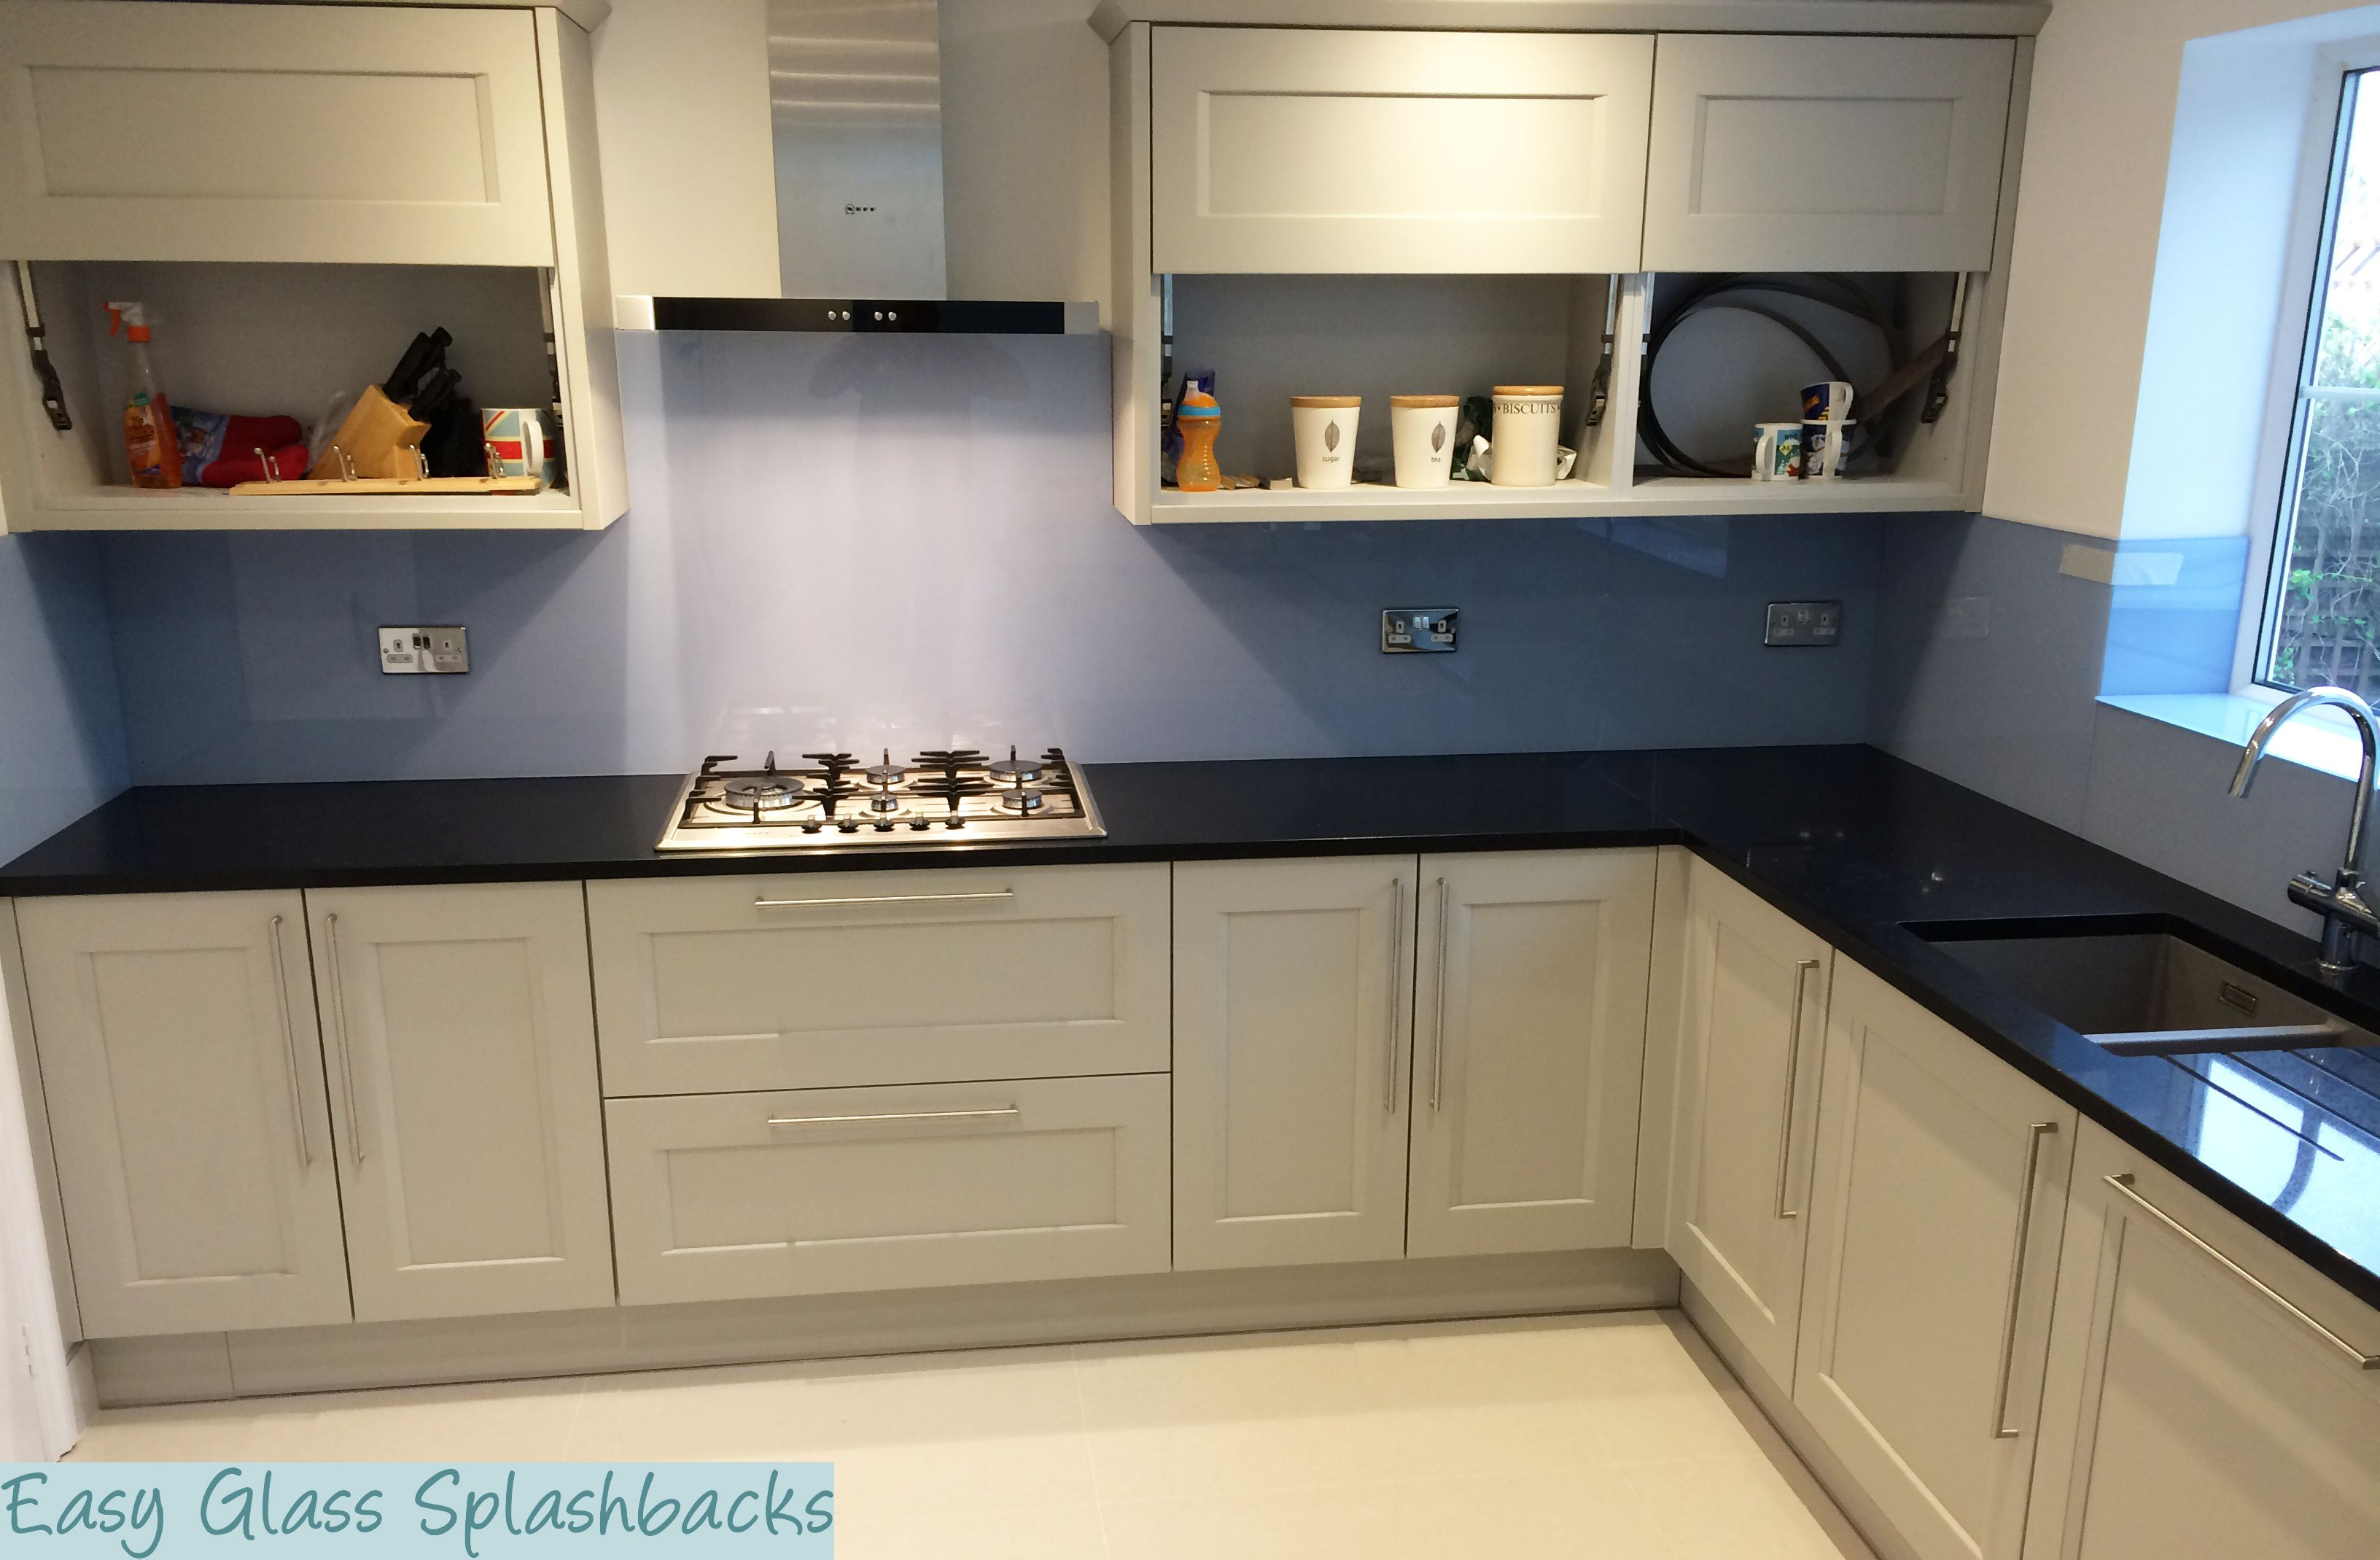 Price Buy Made To Measure Service The UKs Finest Digitally Printed Glass Splashbacks